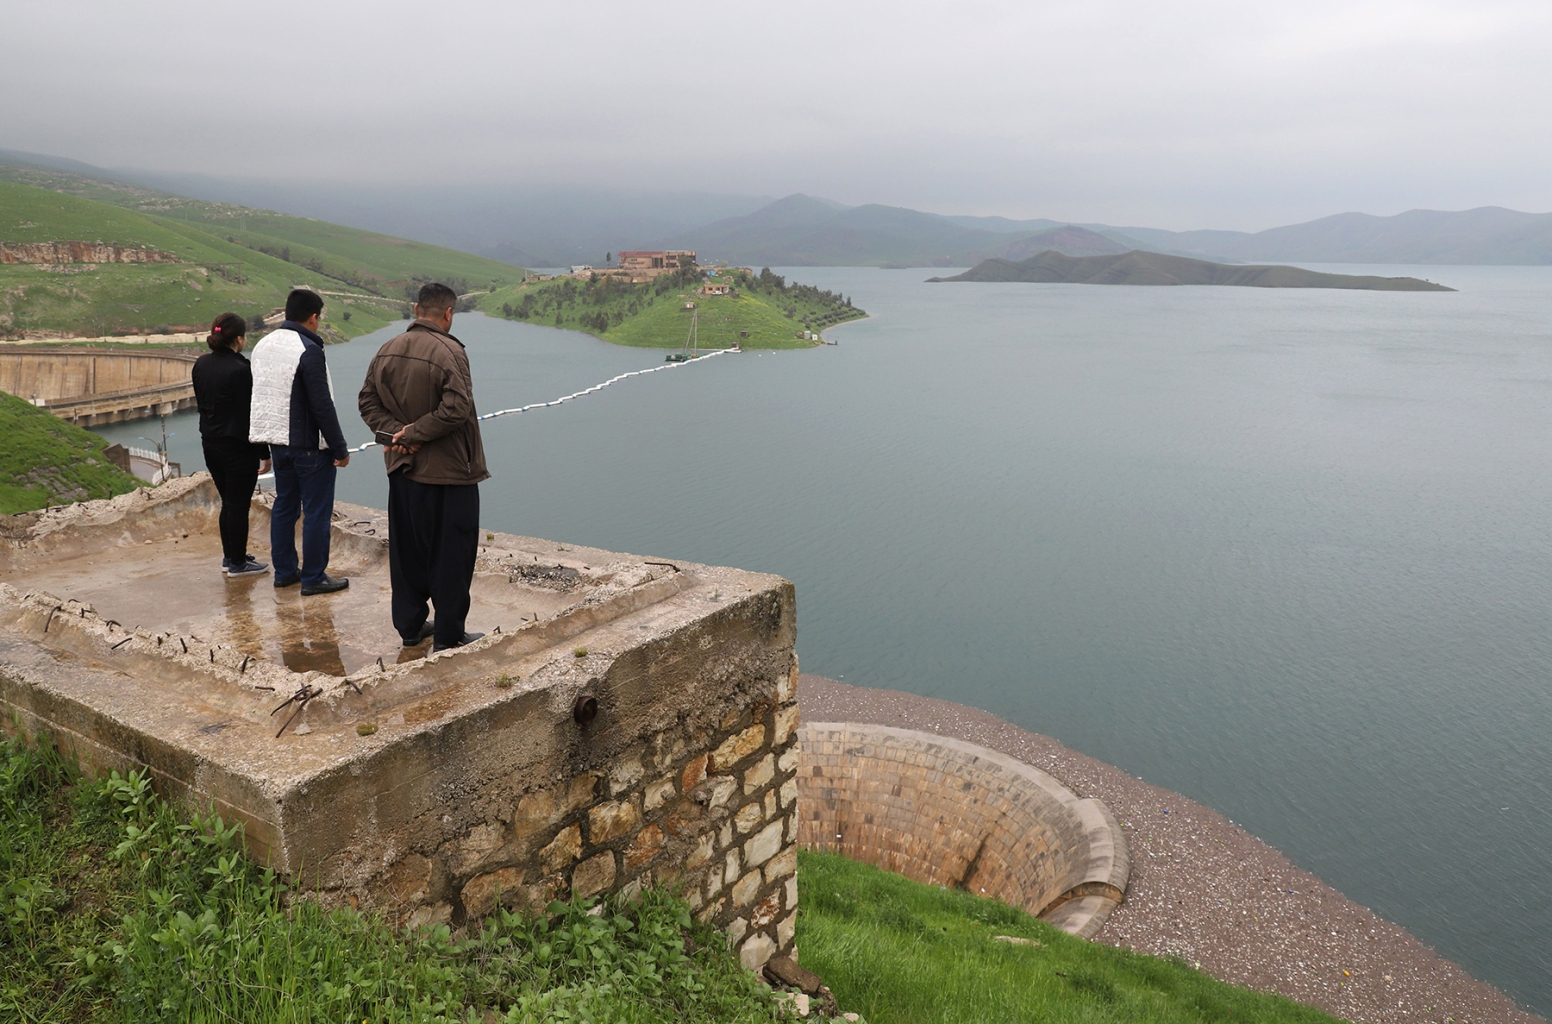 People look over waters filling the Dukan dam in Iraq's northern autonomous region of Kurdistan, which was built in 1955 and has reached its highest levels following heavy rains in the region, on April 2. SHWAN MOHAMMED/AFP/Getty Images